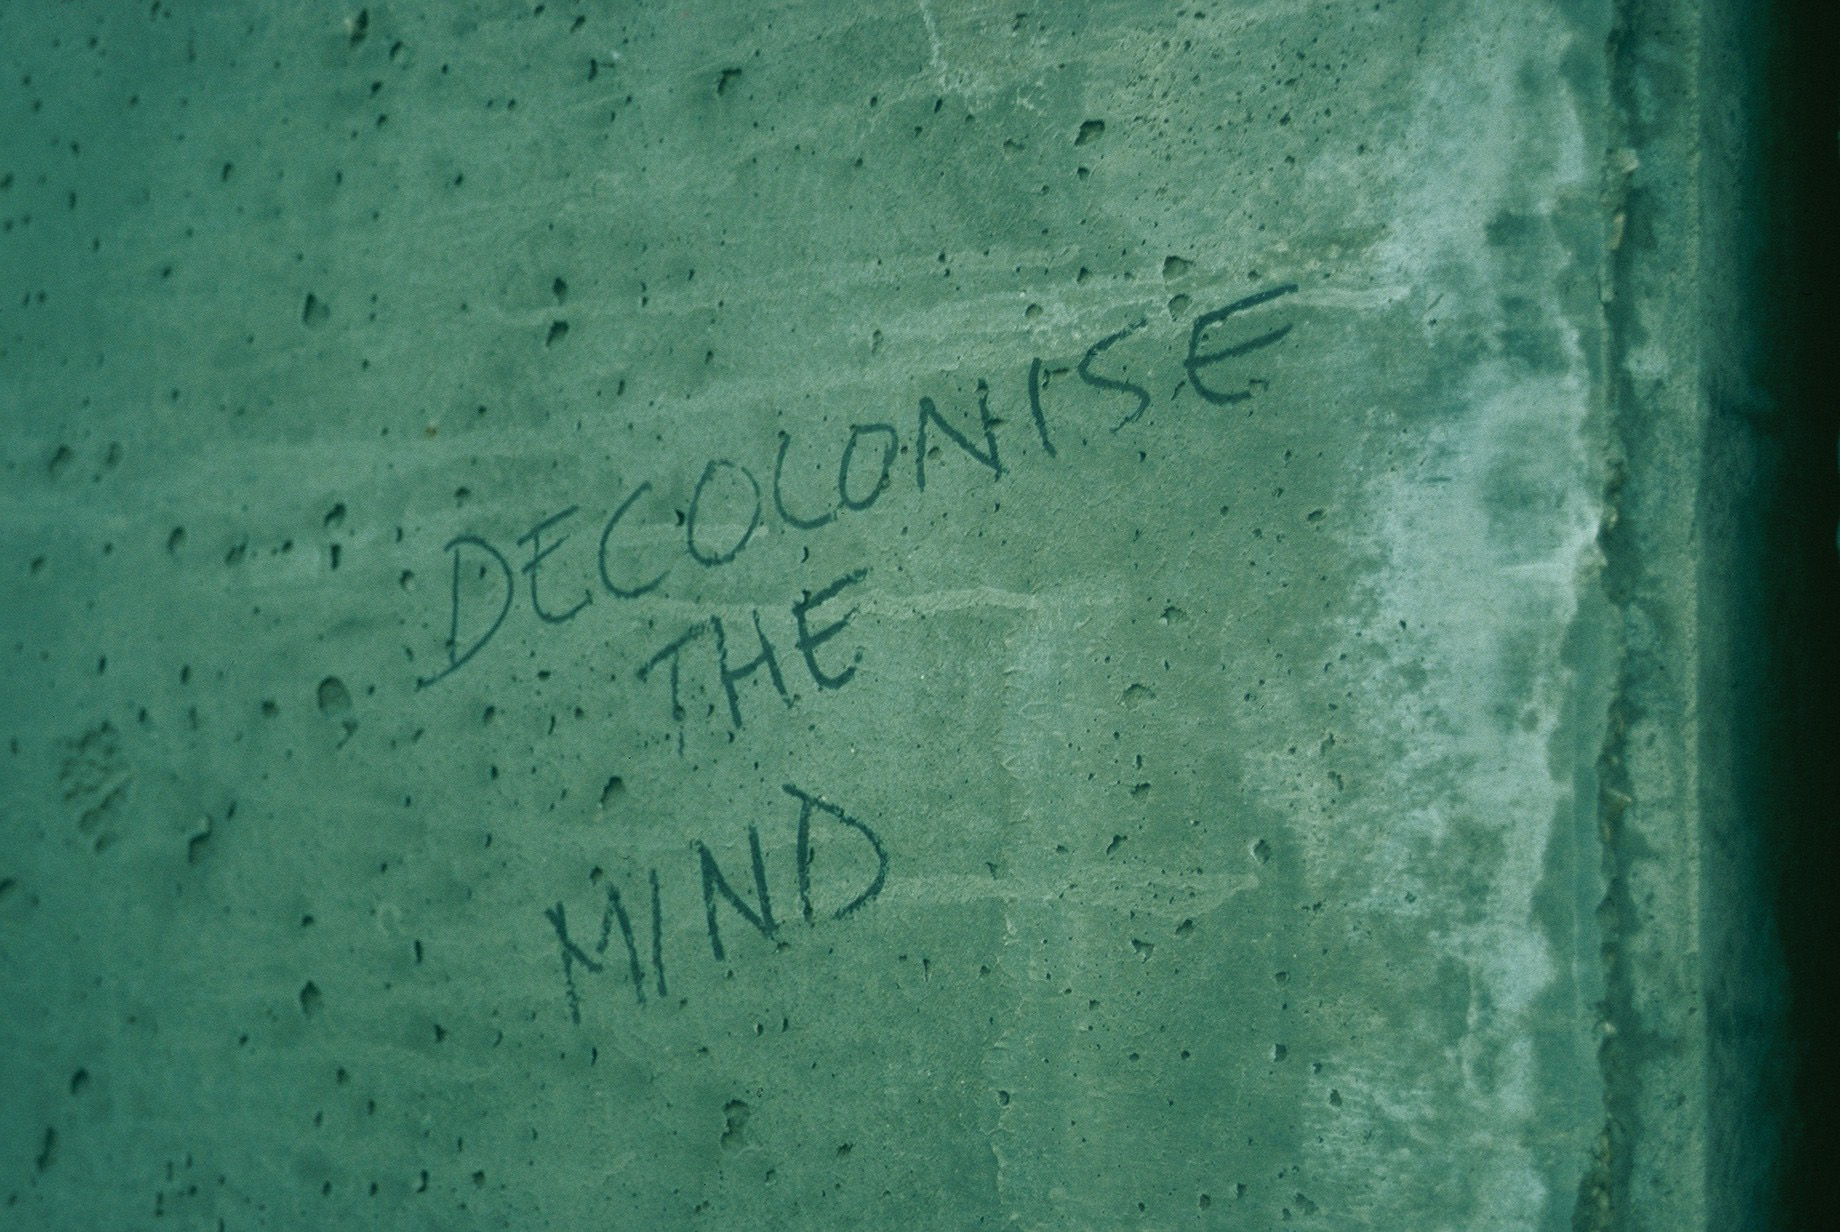 San Pedro V The Wall. DECOLONIZE THE MIND